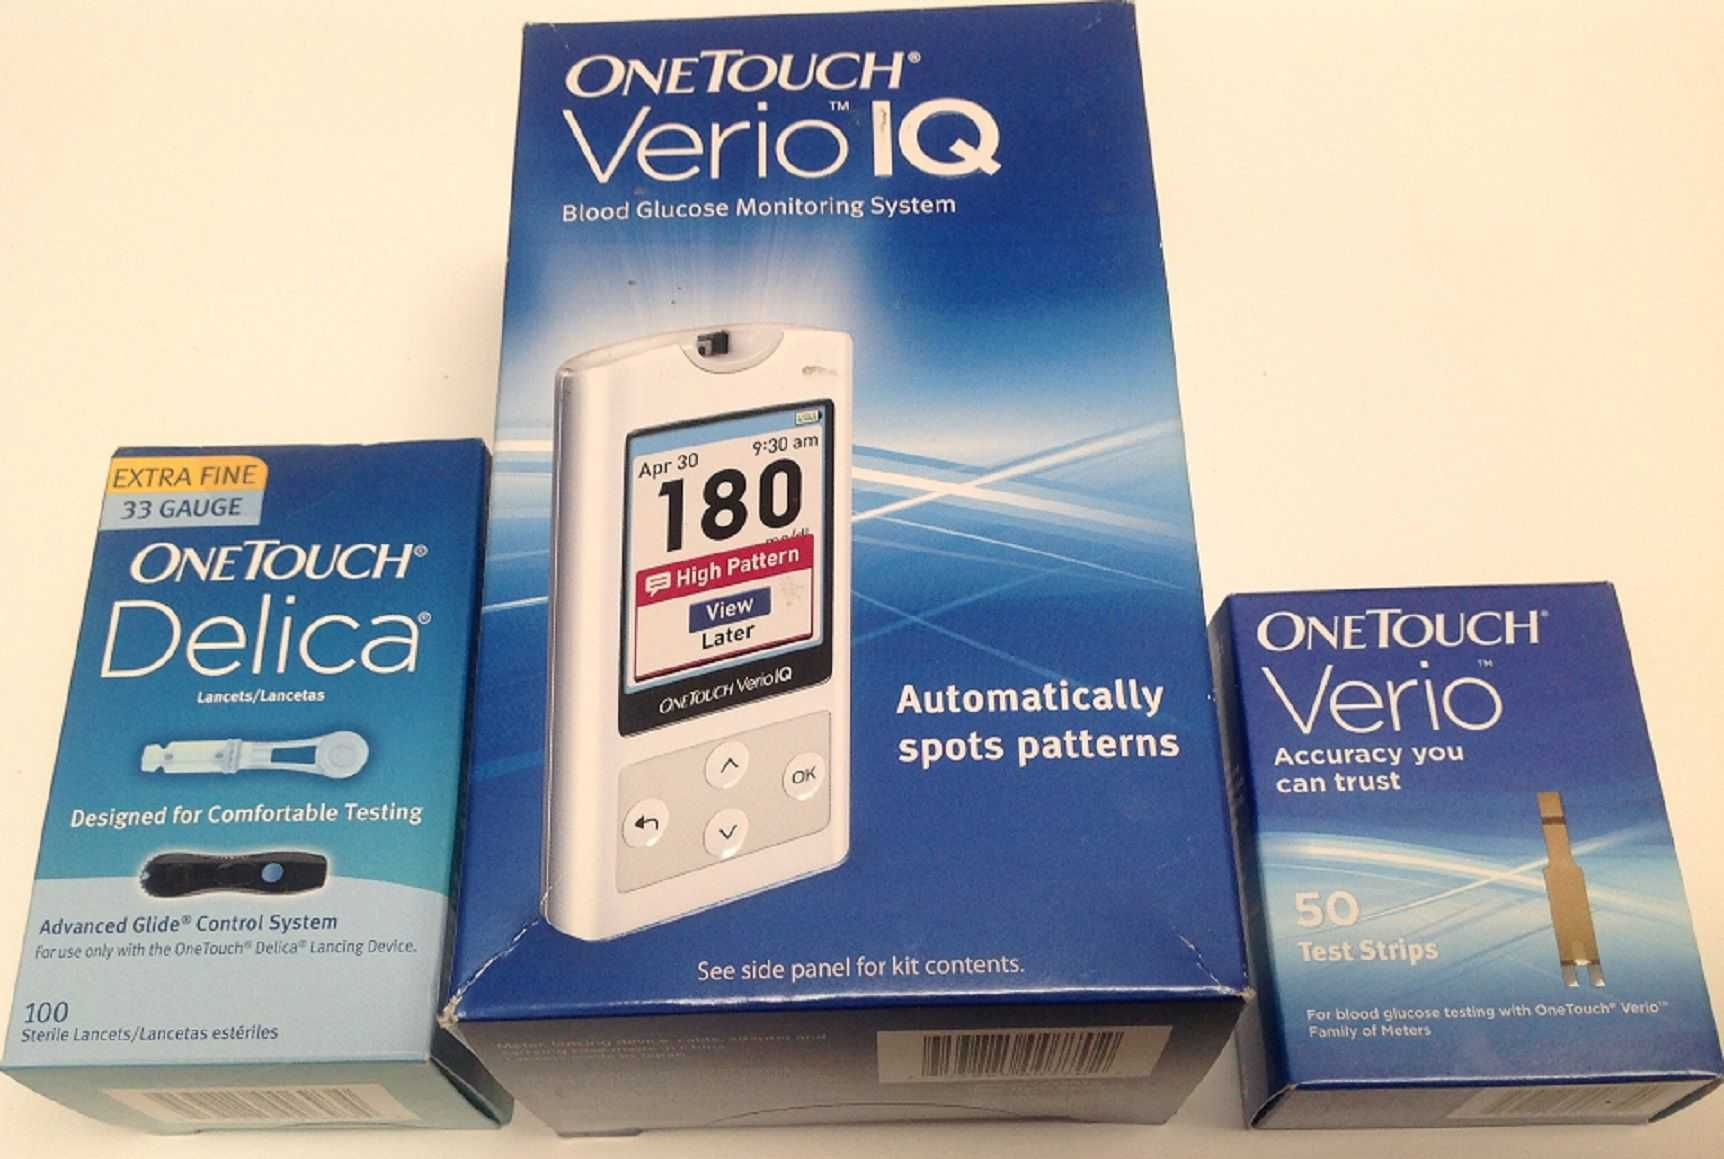 ONE TOUCH VERIO IQ